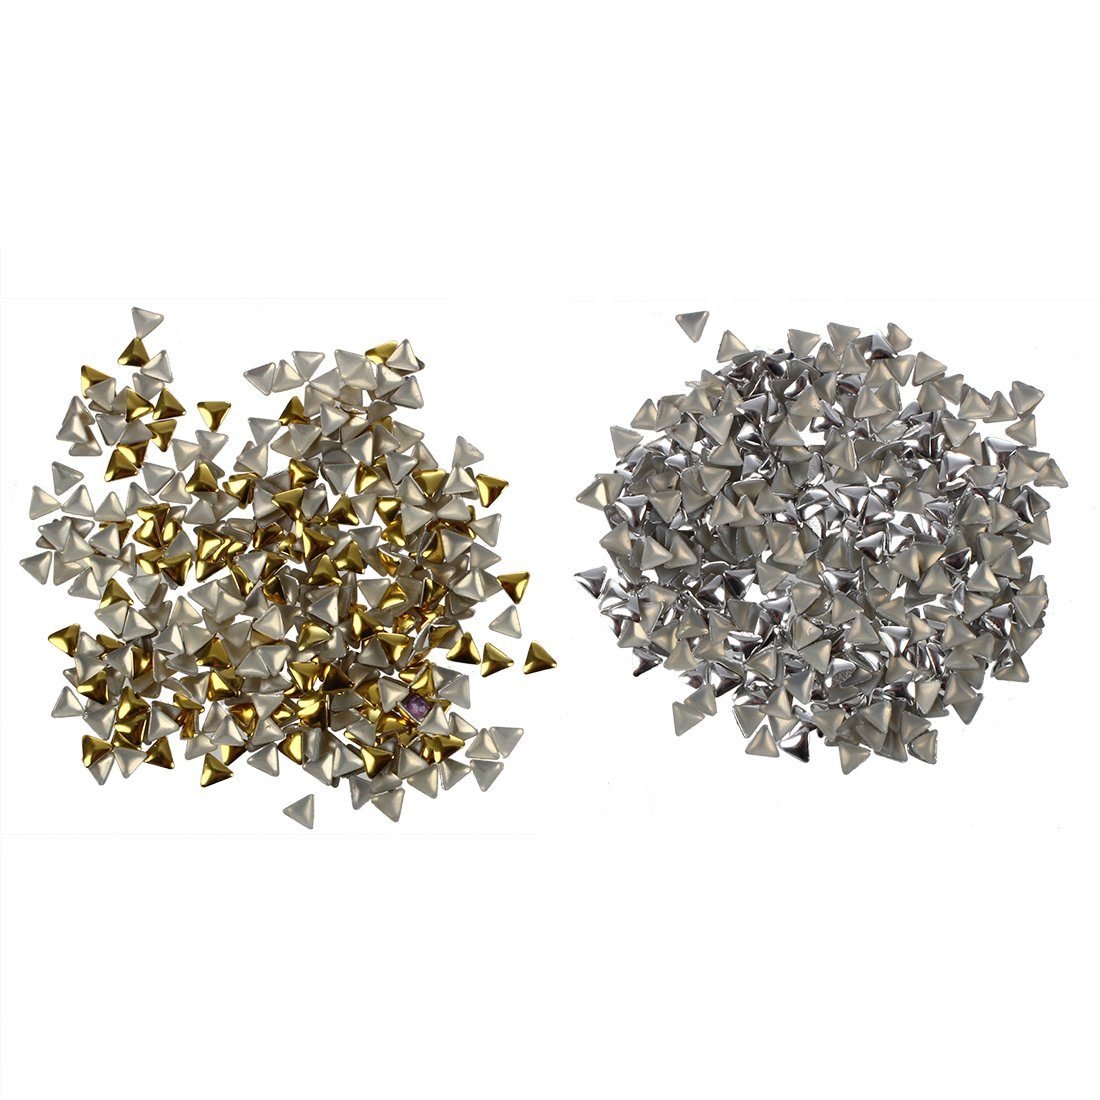 SODIAL(R) Nail Art Triangle Design Nail Studs for Nails, Cellphones £¨Gold + Silver£© 013073